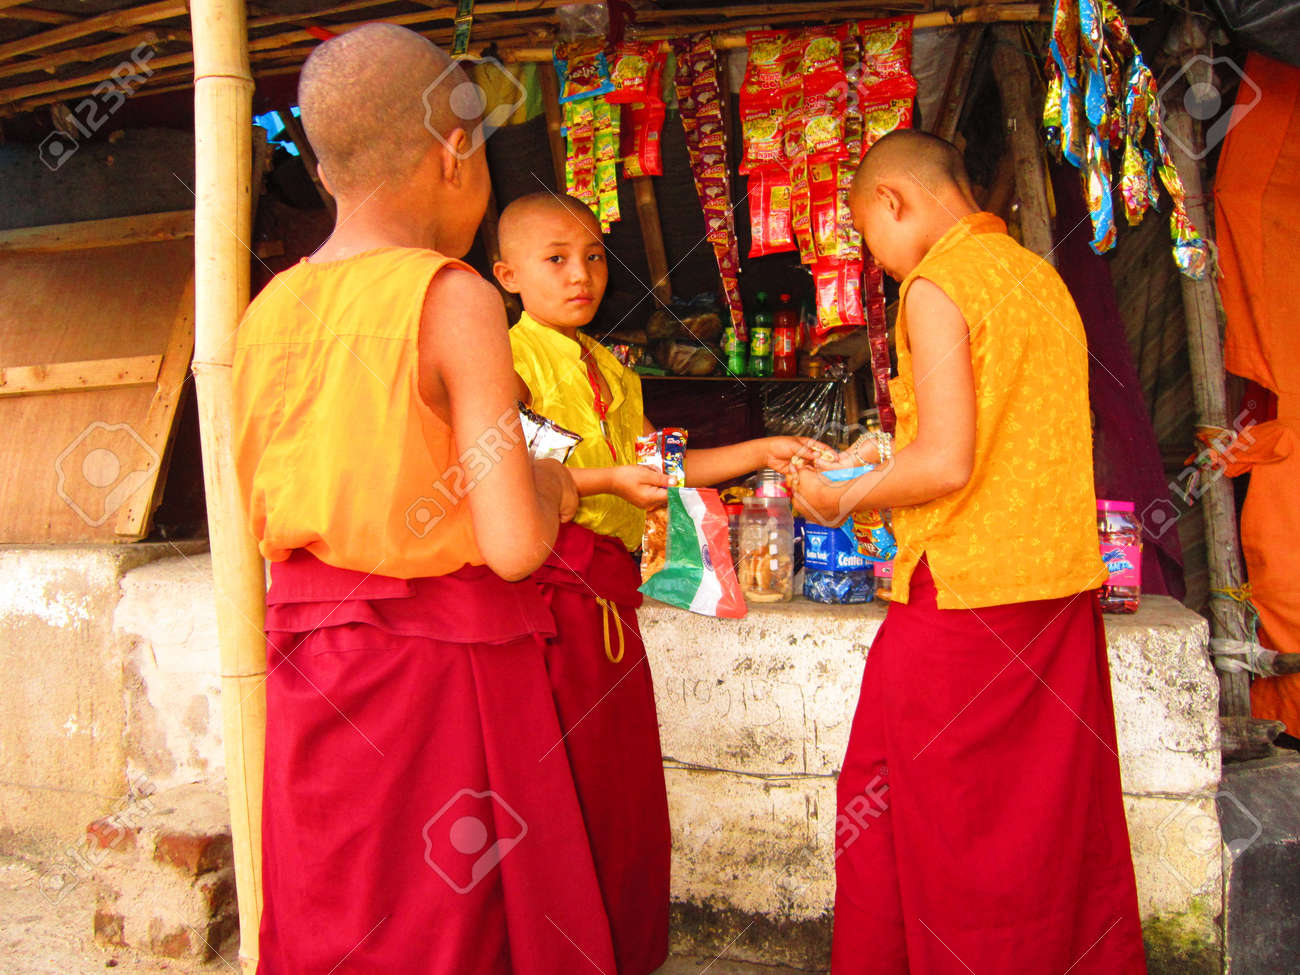 Children monk with INDIAN NATIONAL FLAG ahead of Independence day of India at a grocery shop in front of Karma Monastaery, Bodhgaya, Shot at 1754 pm on 11.08.12 at Bodhgaya, Bihar, India, Asia. Stock Photo - 14816216